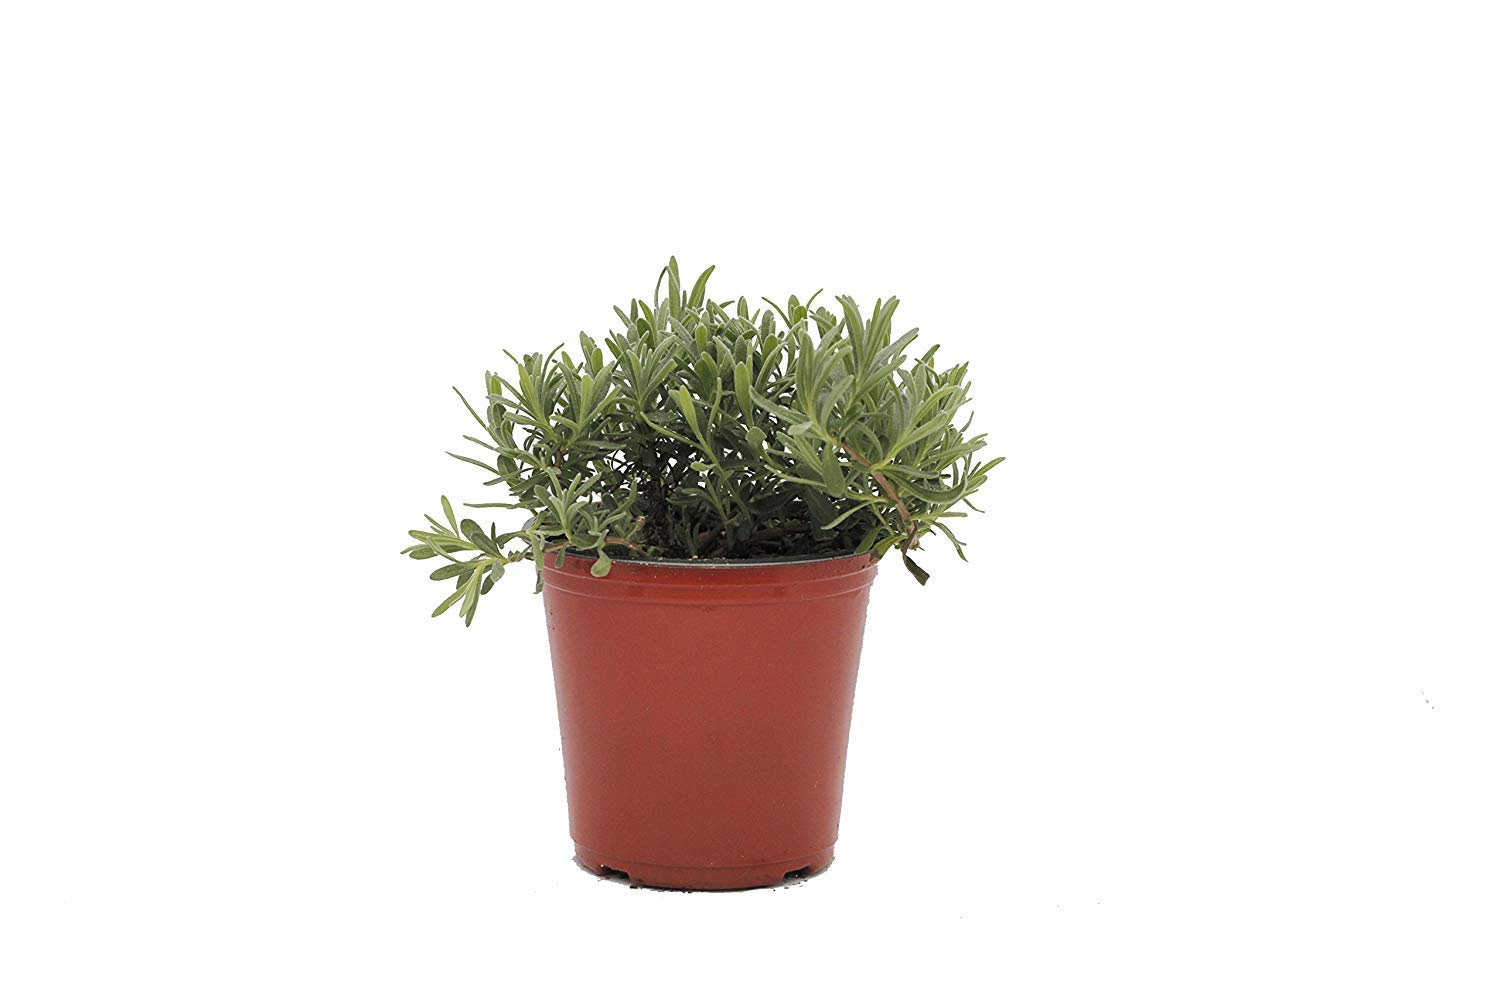 Lavender 'Munstead' Herb Plant (Pack of 6) by Dutch Country Classics (Image #1)